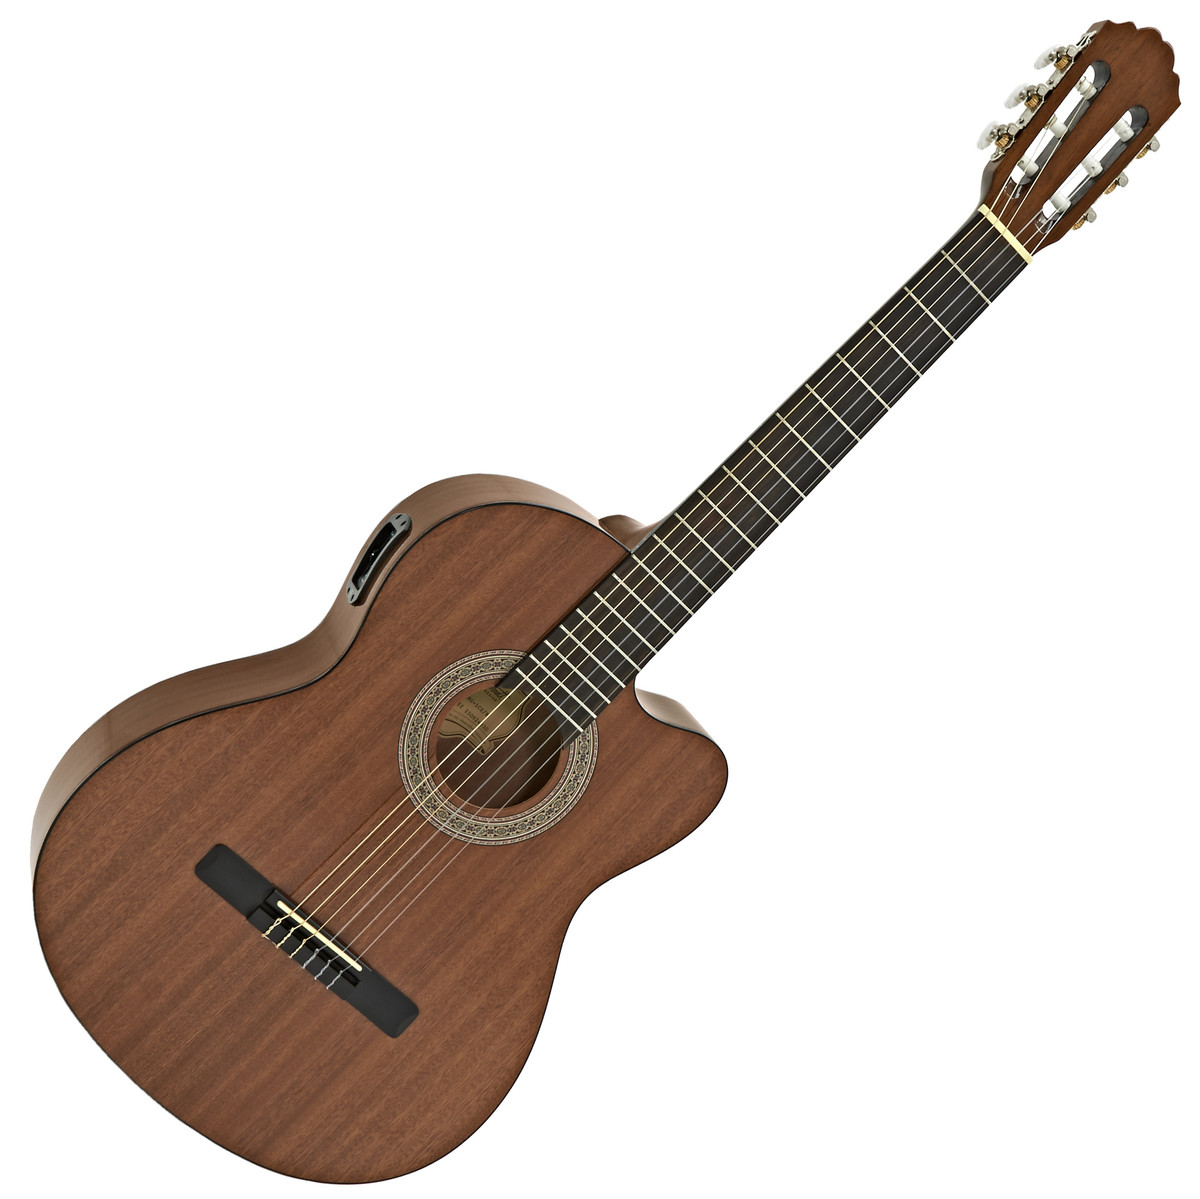 Image of Greg Bennett CNG-1CE Electro Classical Guitar Mahogany